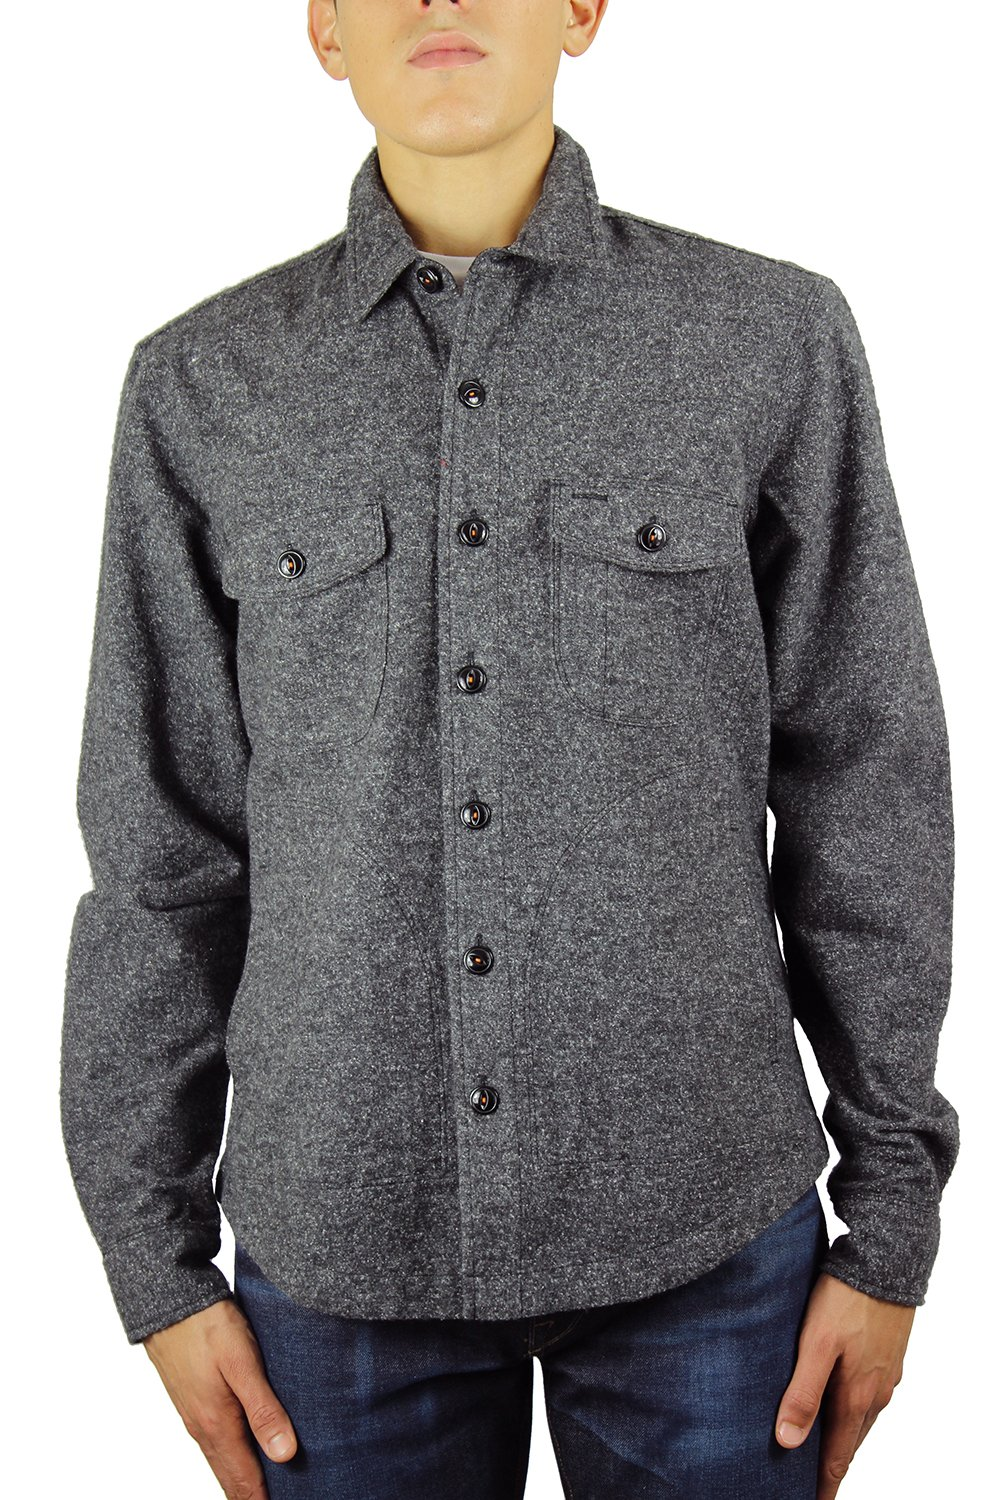 Kato Shirts Jacket 100% Cotton Speckle Midnight XL